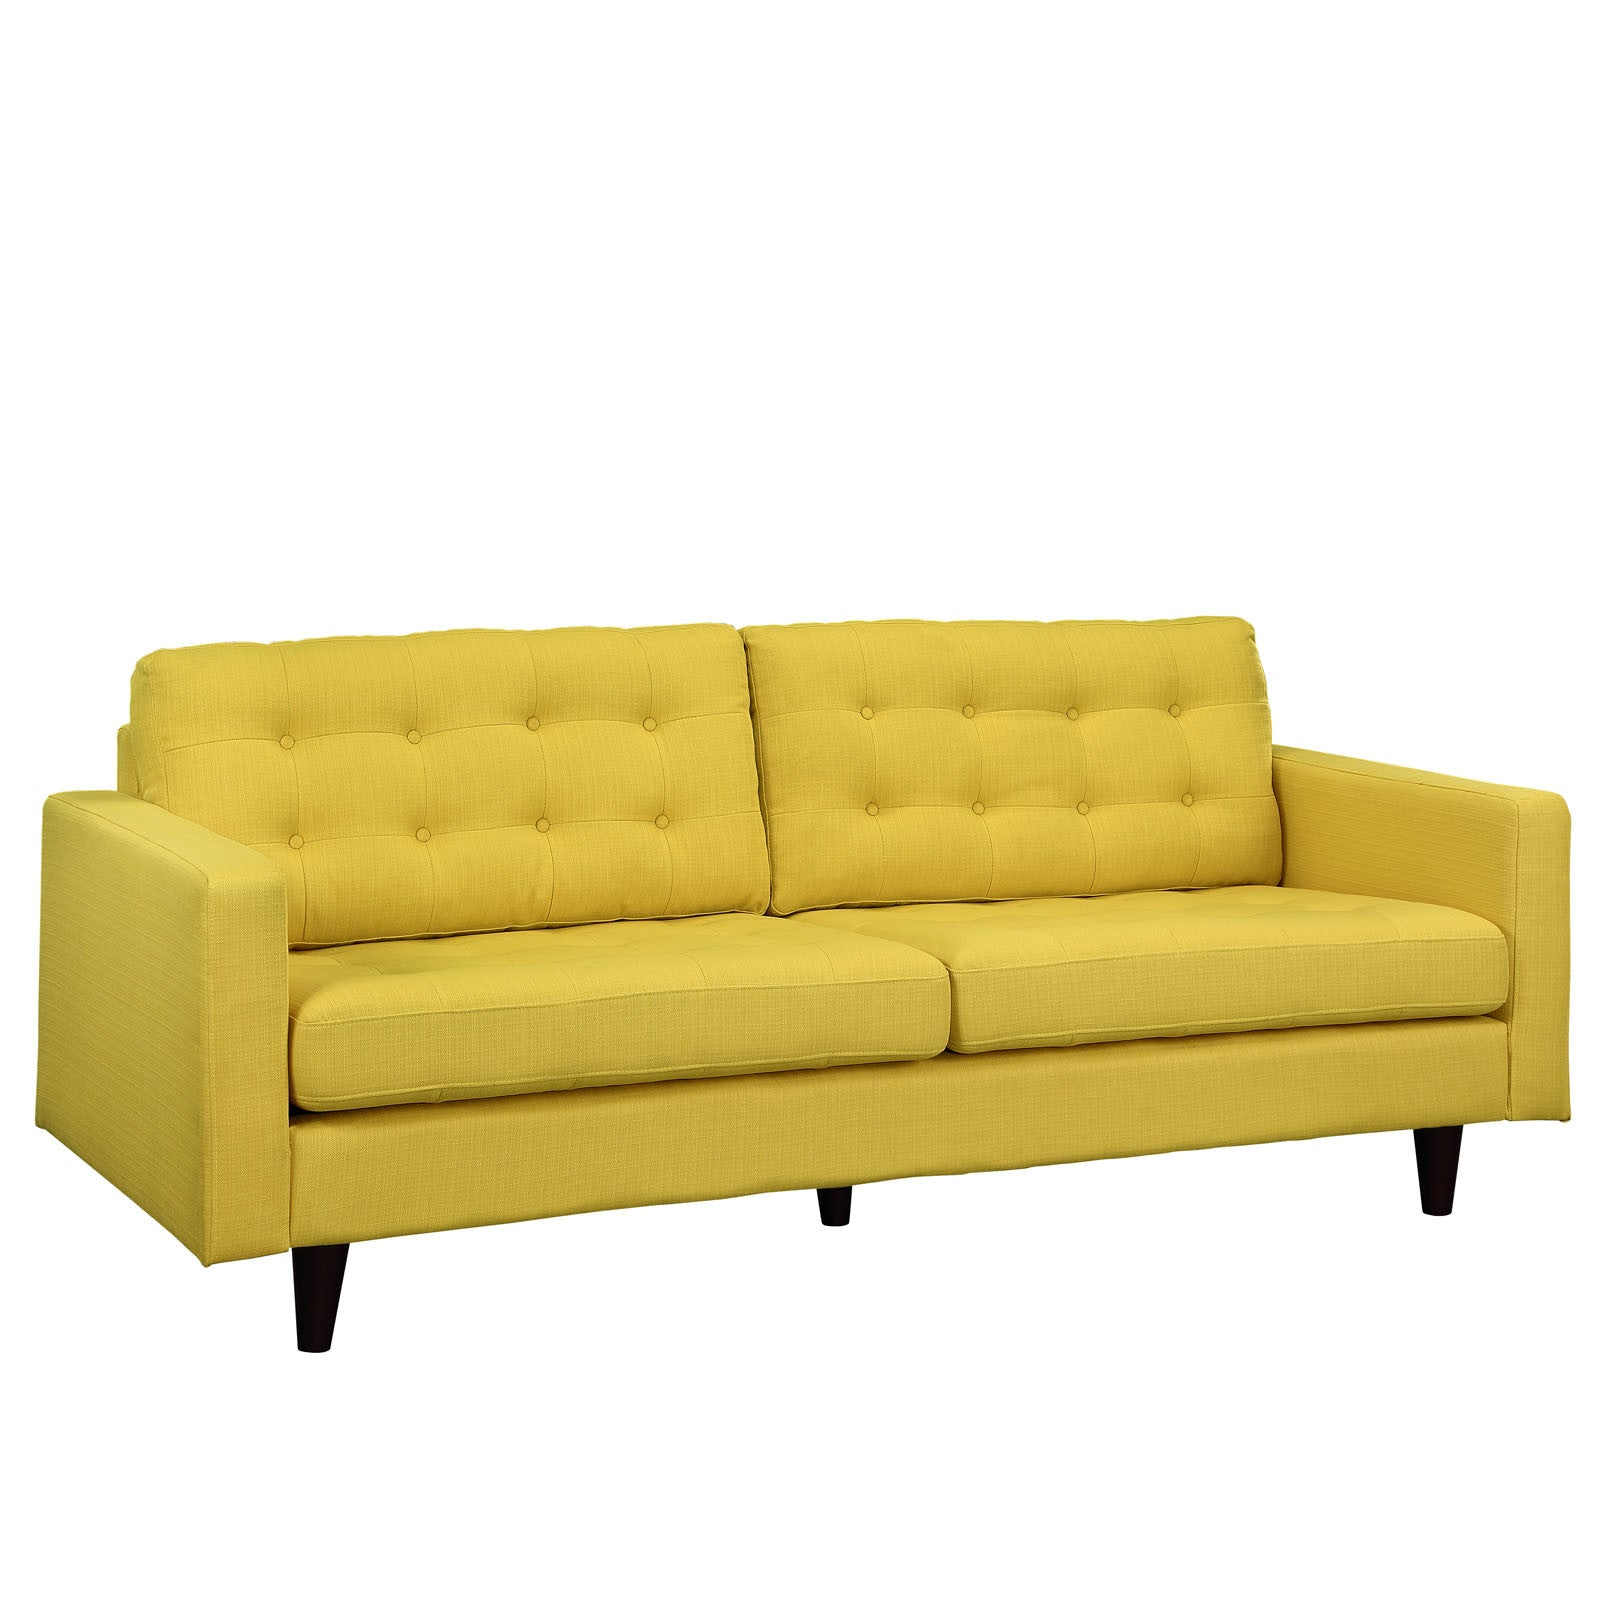 Modway Furniture Empress Upholstered Sofa Eei 1011